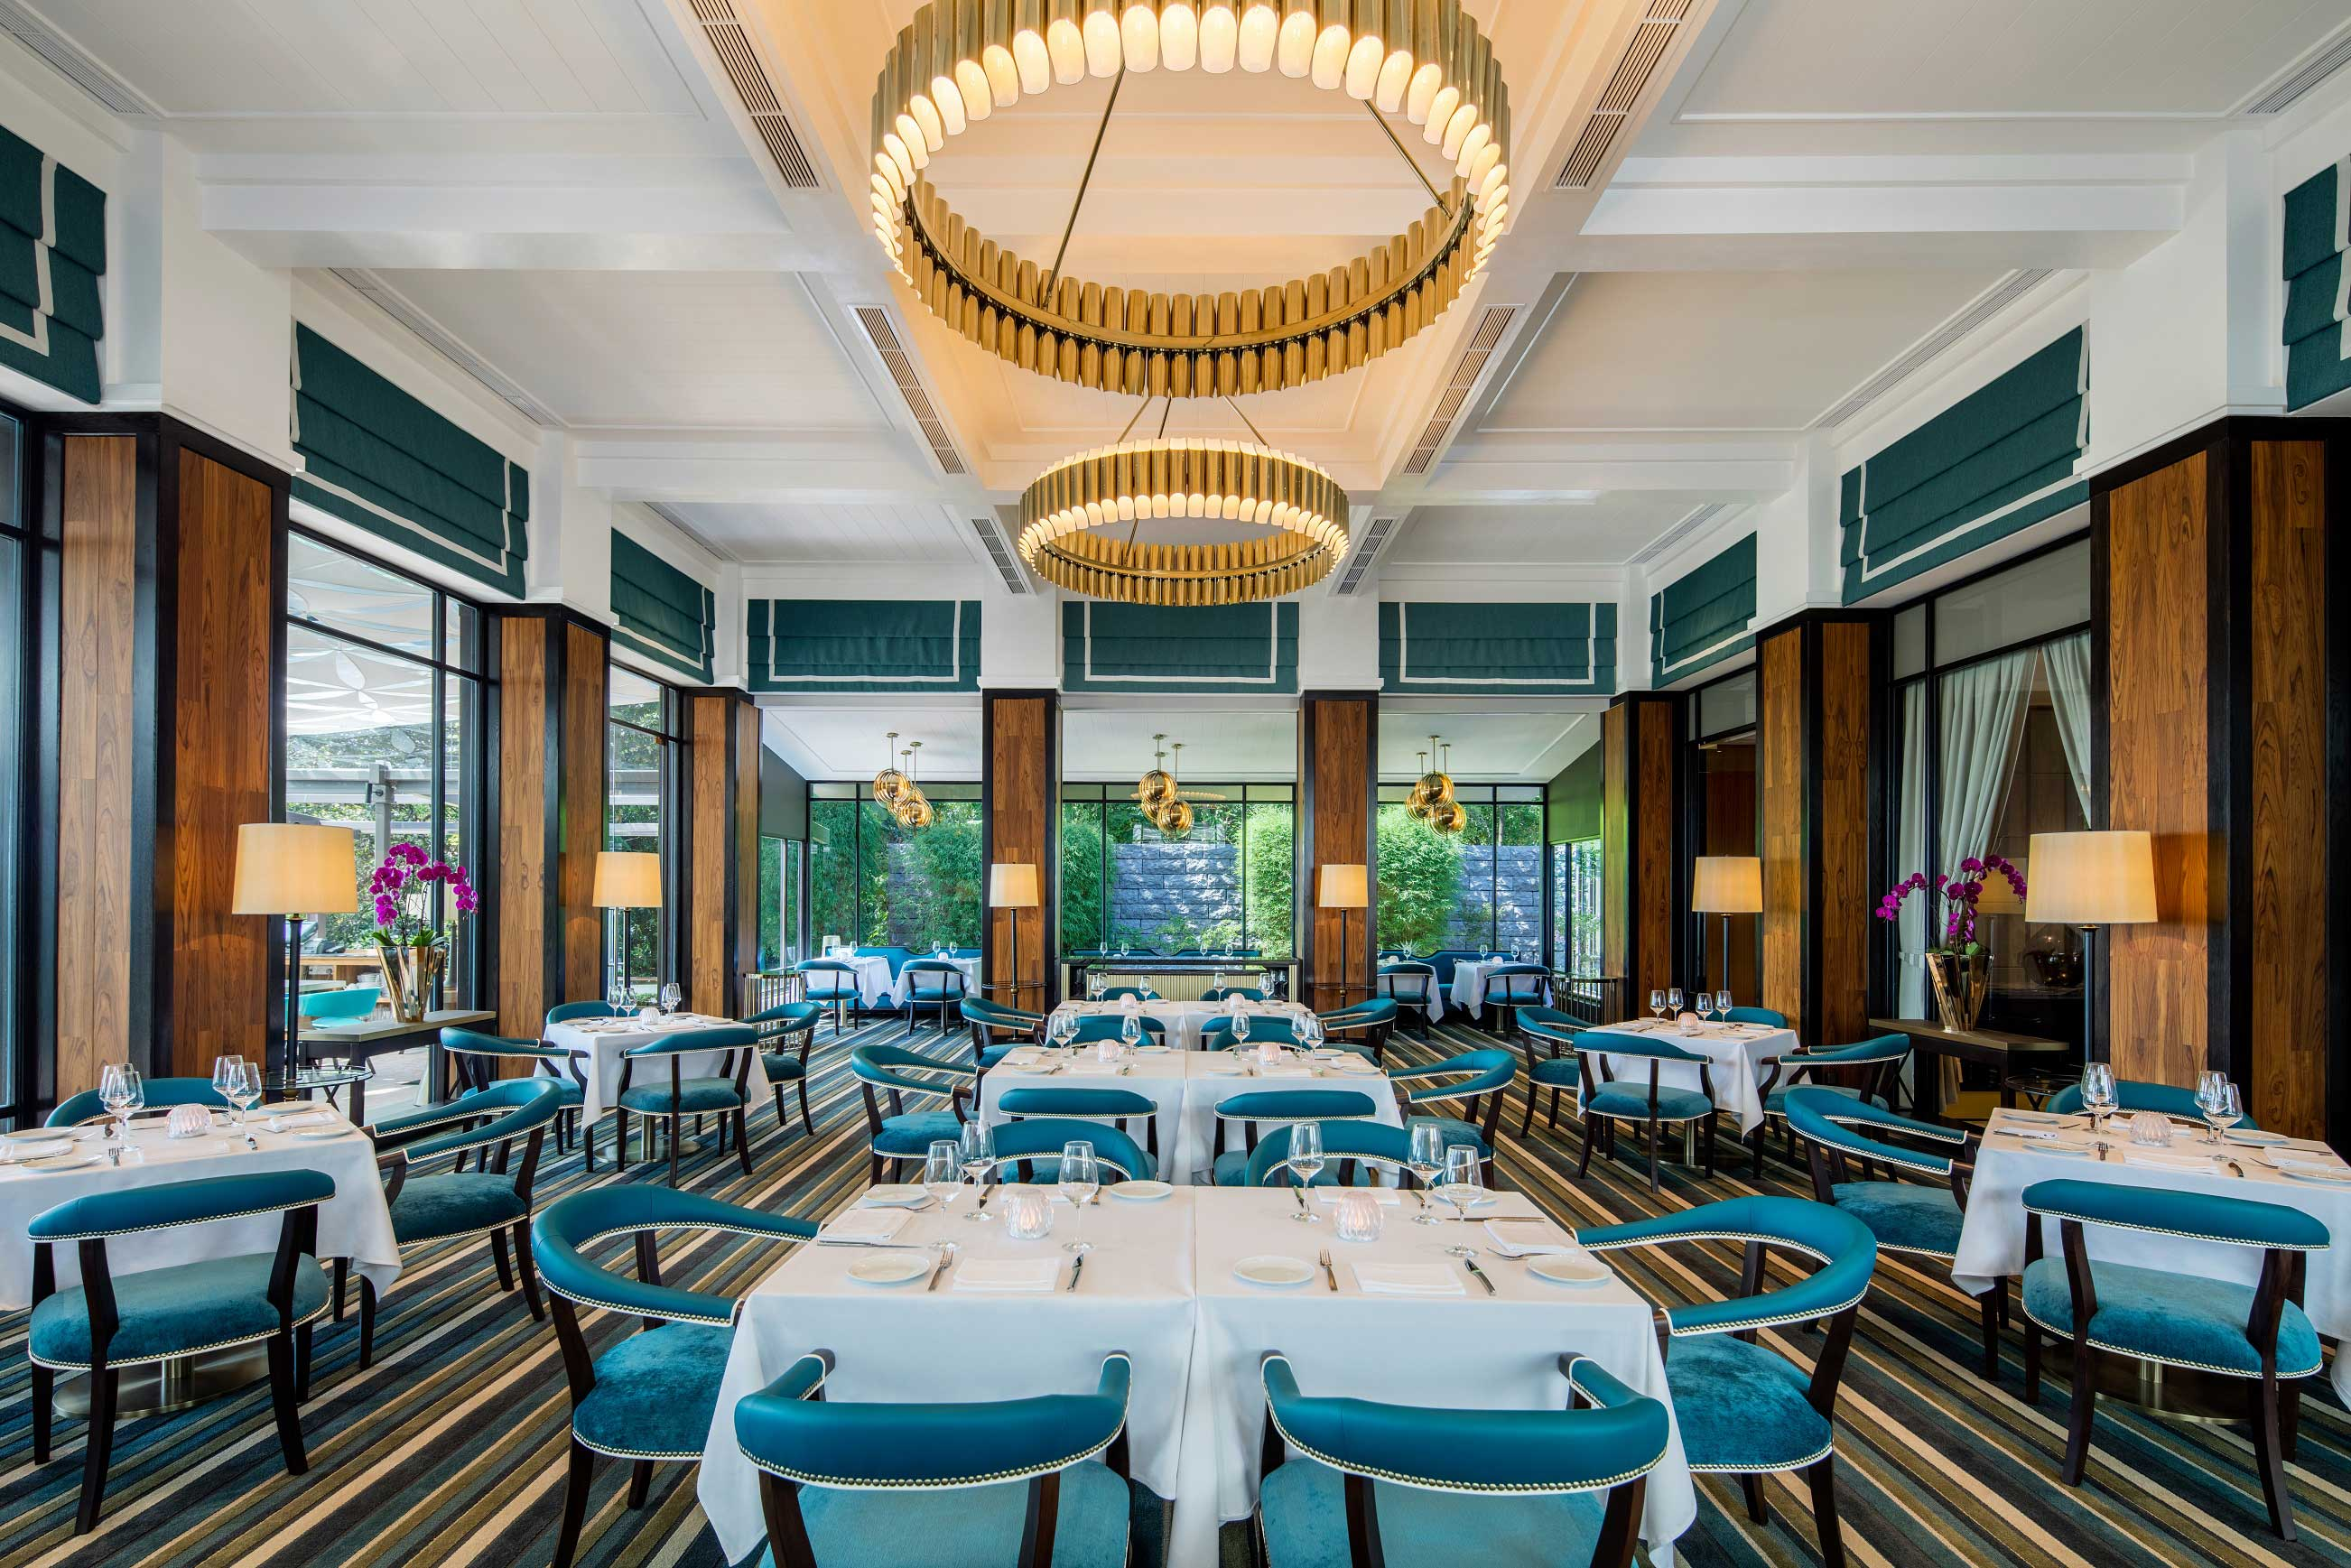 Best-dining-deals-venuerific-blog-illido-at-the-cliff-interior